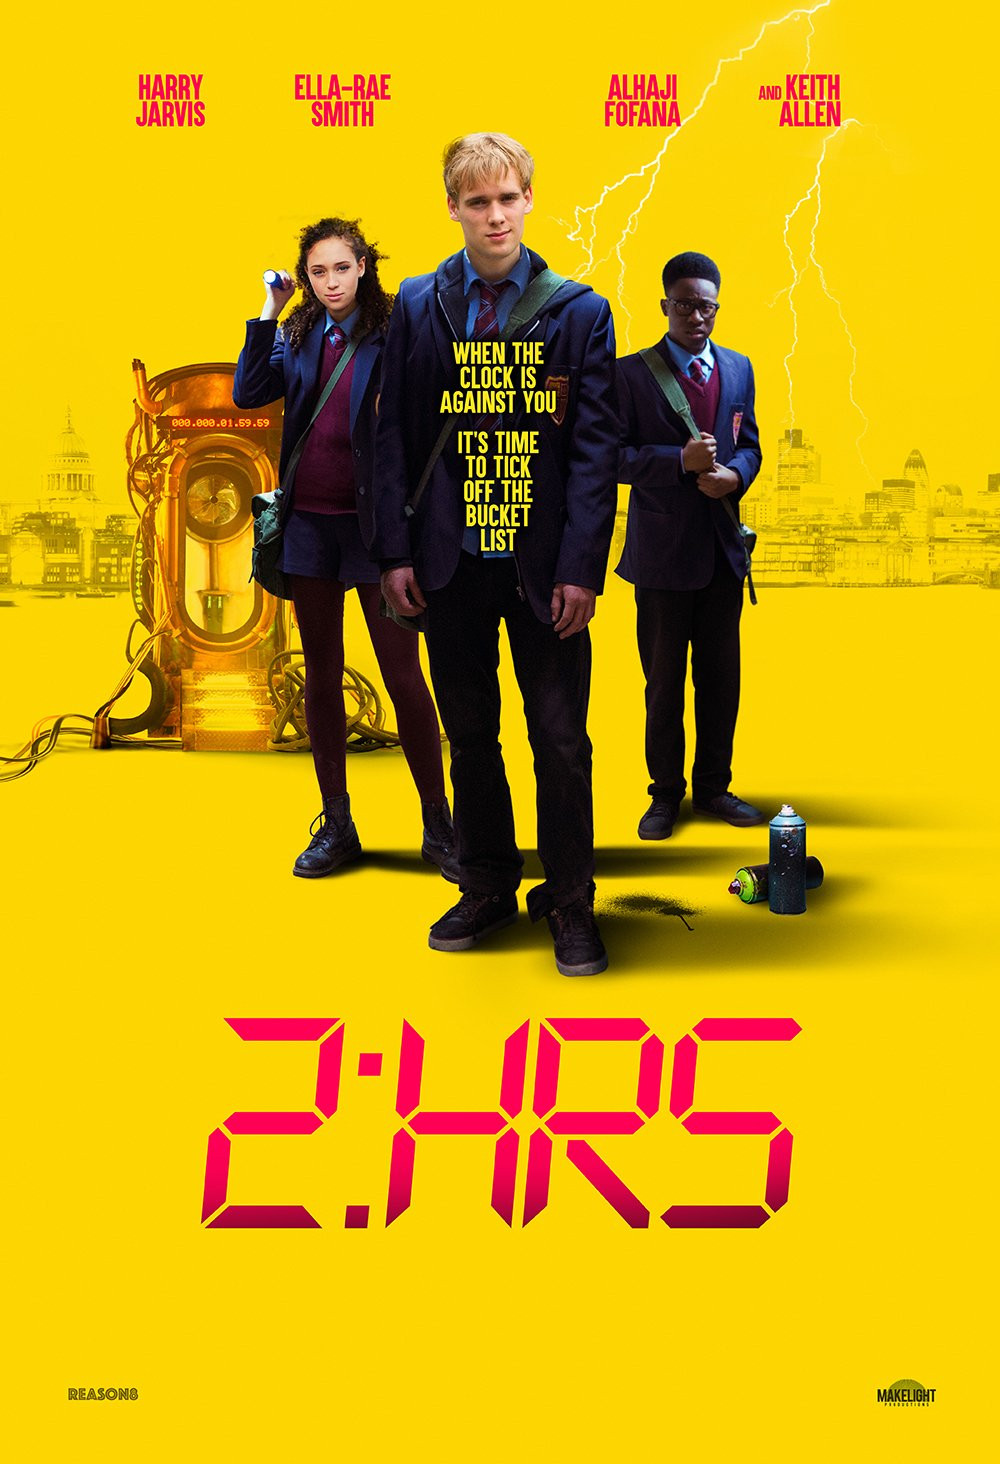 2:hrs movie poster